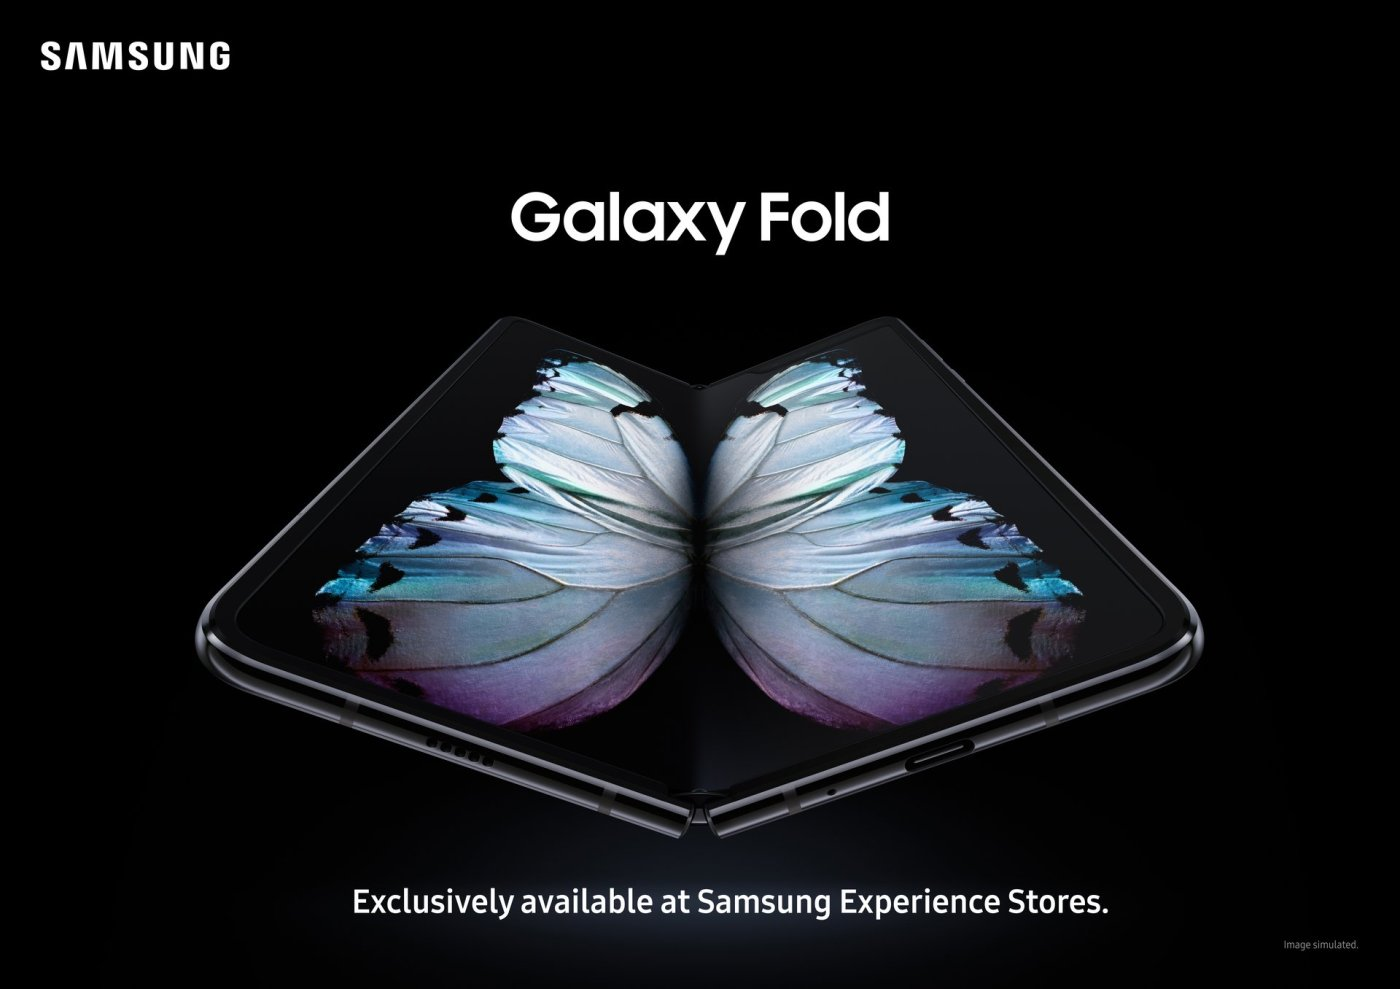 Samsung Galaxy Fold November 28th 2019 Black